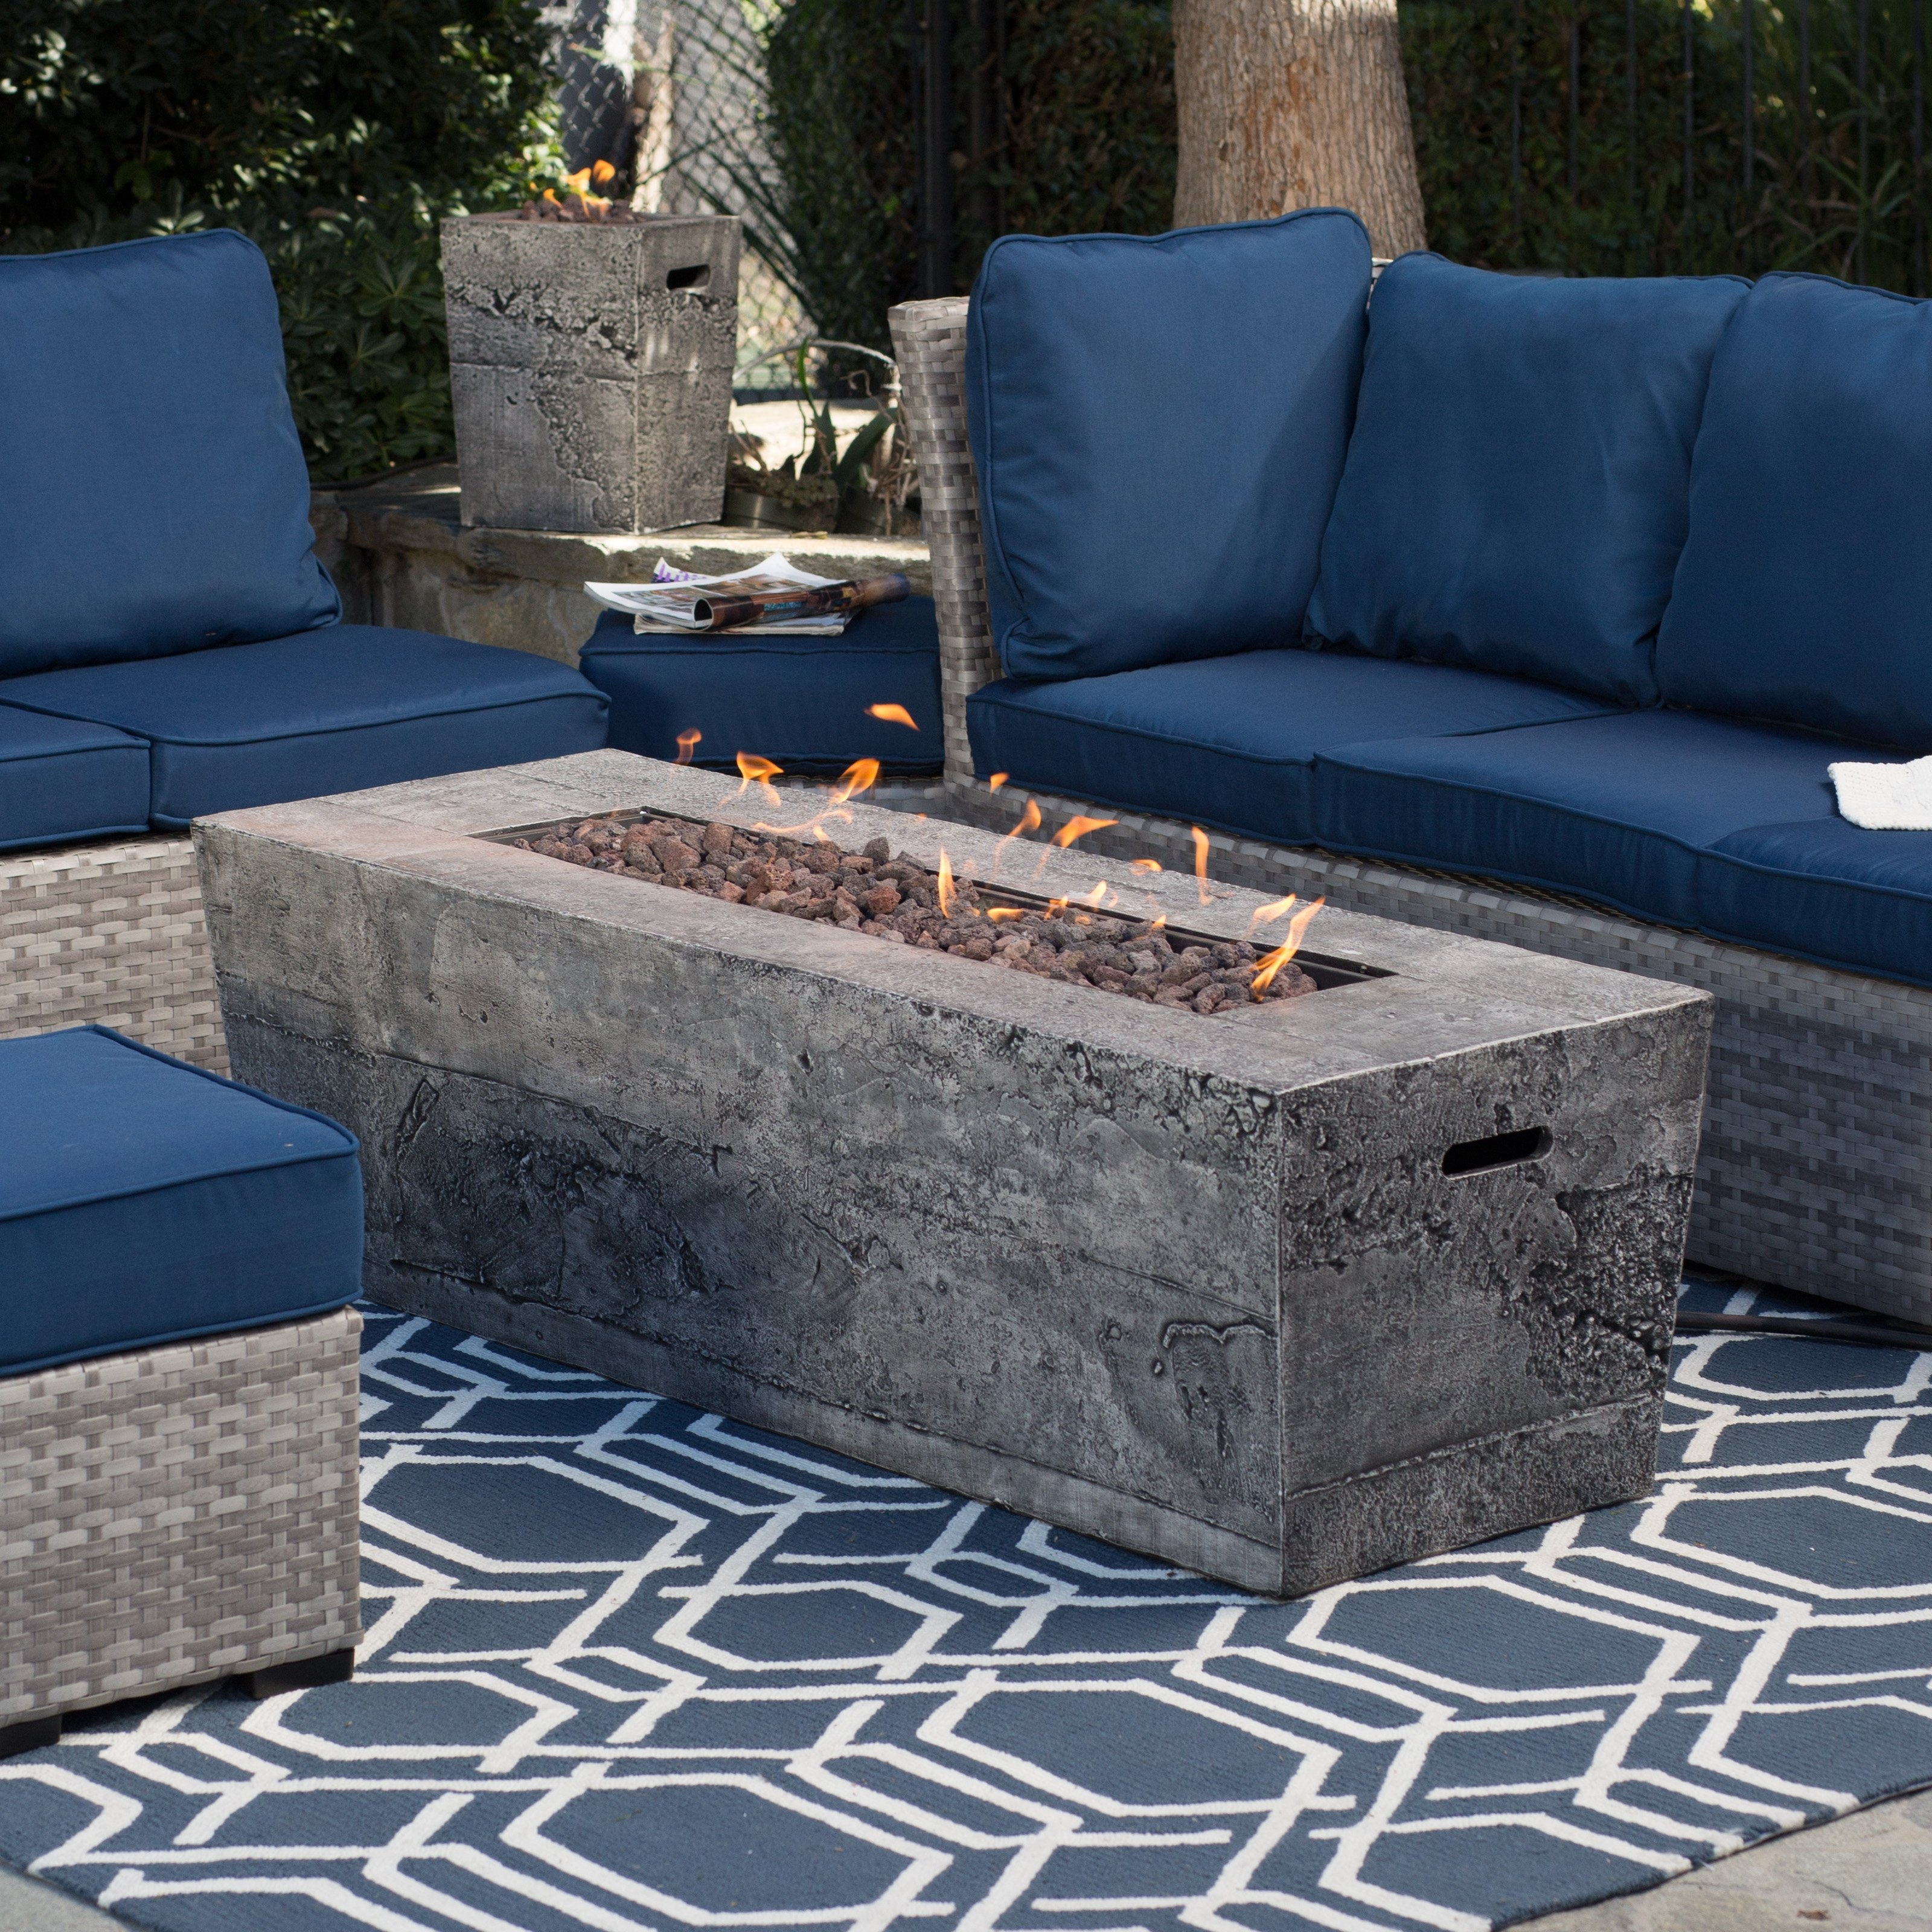 Latest Patio Conversation Sets With Gas Fire Pit Regarding Lovely Outdoor Patio Set With Gas Fire Pit Red Ember Glacier Stone (View 14 of 20)